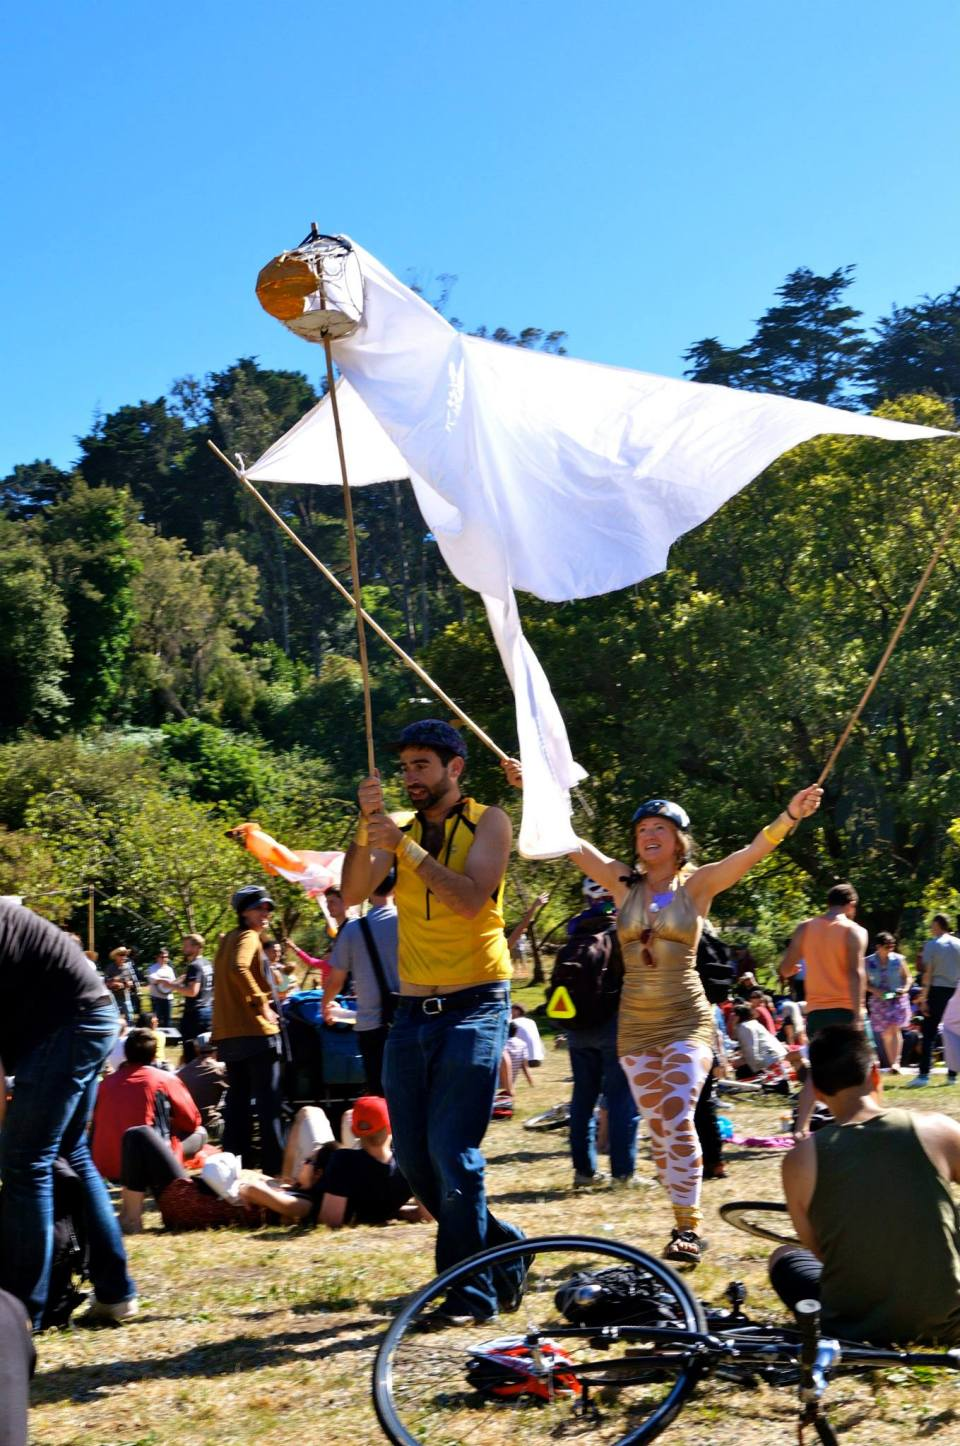 NEED PUPPETEER VOLUNTEERS!  10/13/13 AT SUNDAY STREETS!